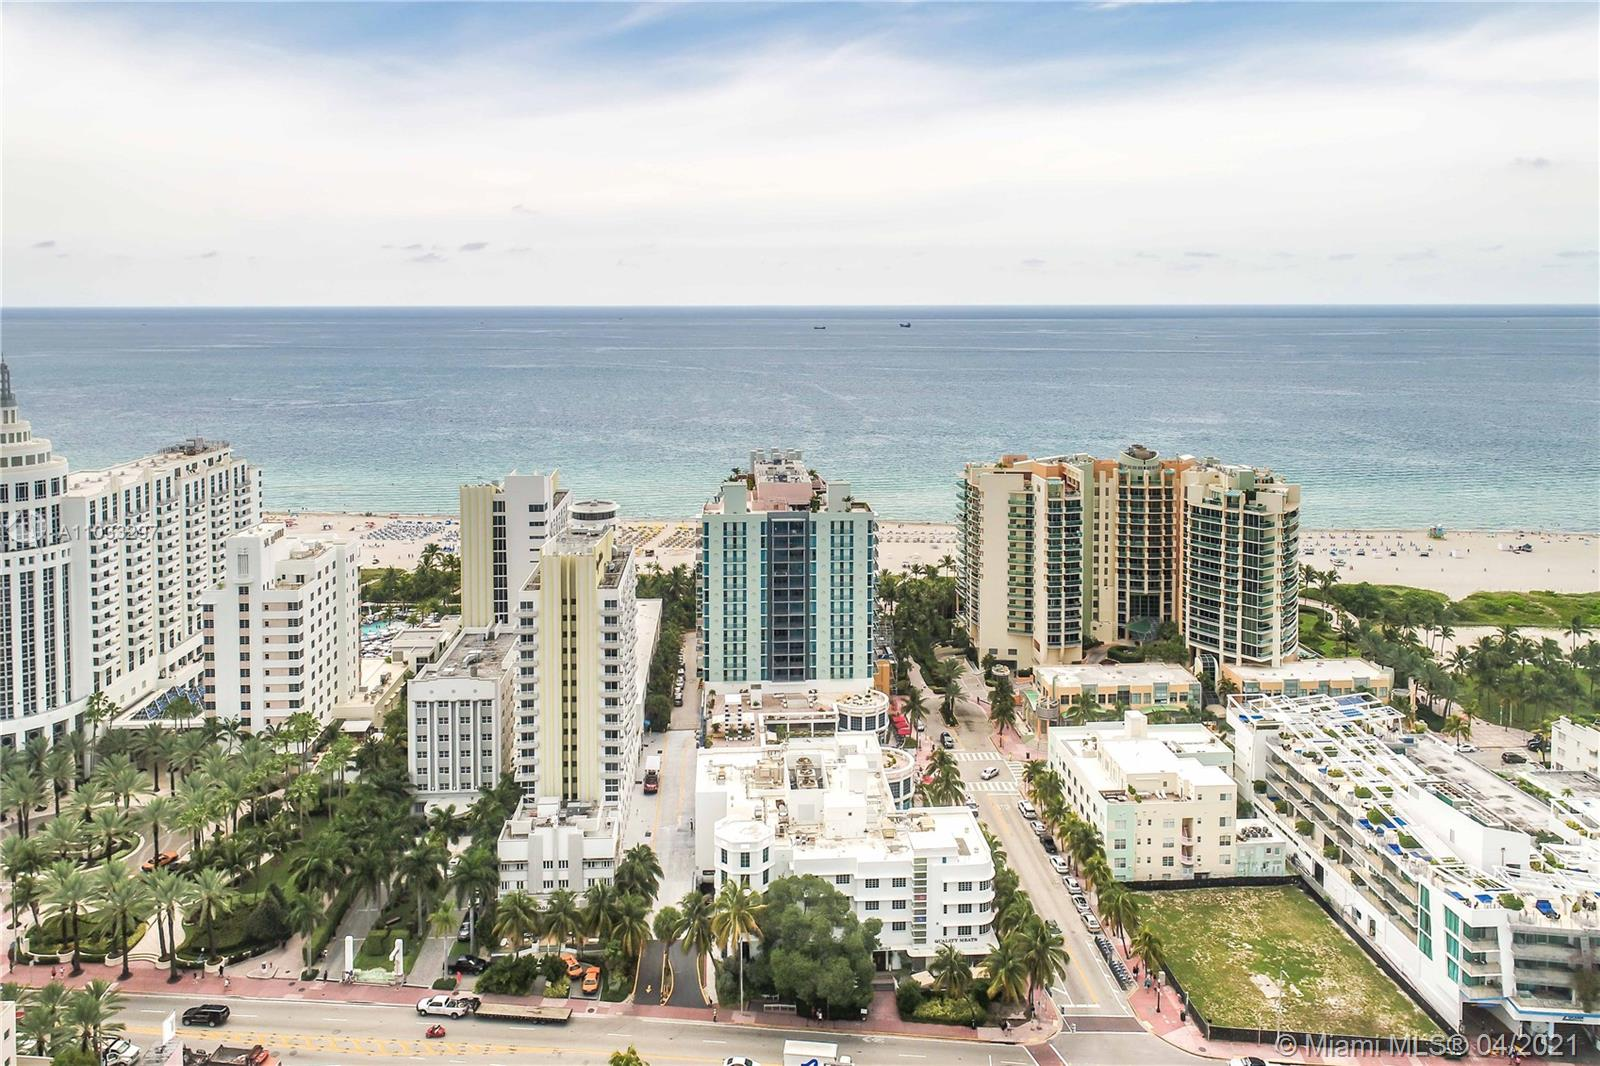 Updated + Upgraded make this condo unique at 1500 Ocean, an oceanfront, full service building by famous architect Michael Graves. The 2nd Bedroom is open to add extra space to living areas (it can be reconverted). Floor to ceiling windows, walk-in closet and views to the ocean from the living room and the terrace. Enjoy the South Beach lifestyle!